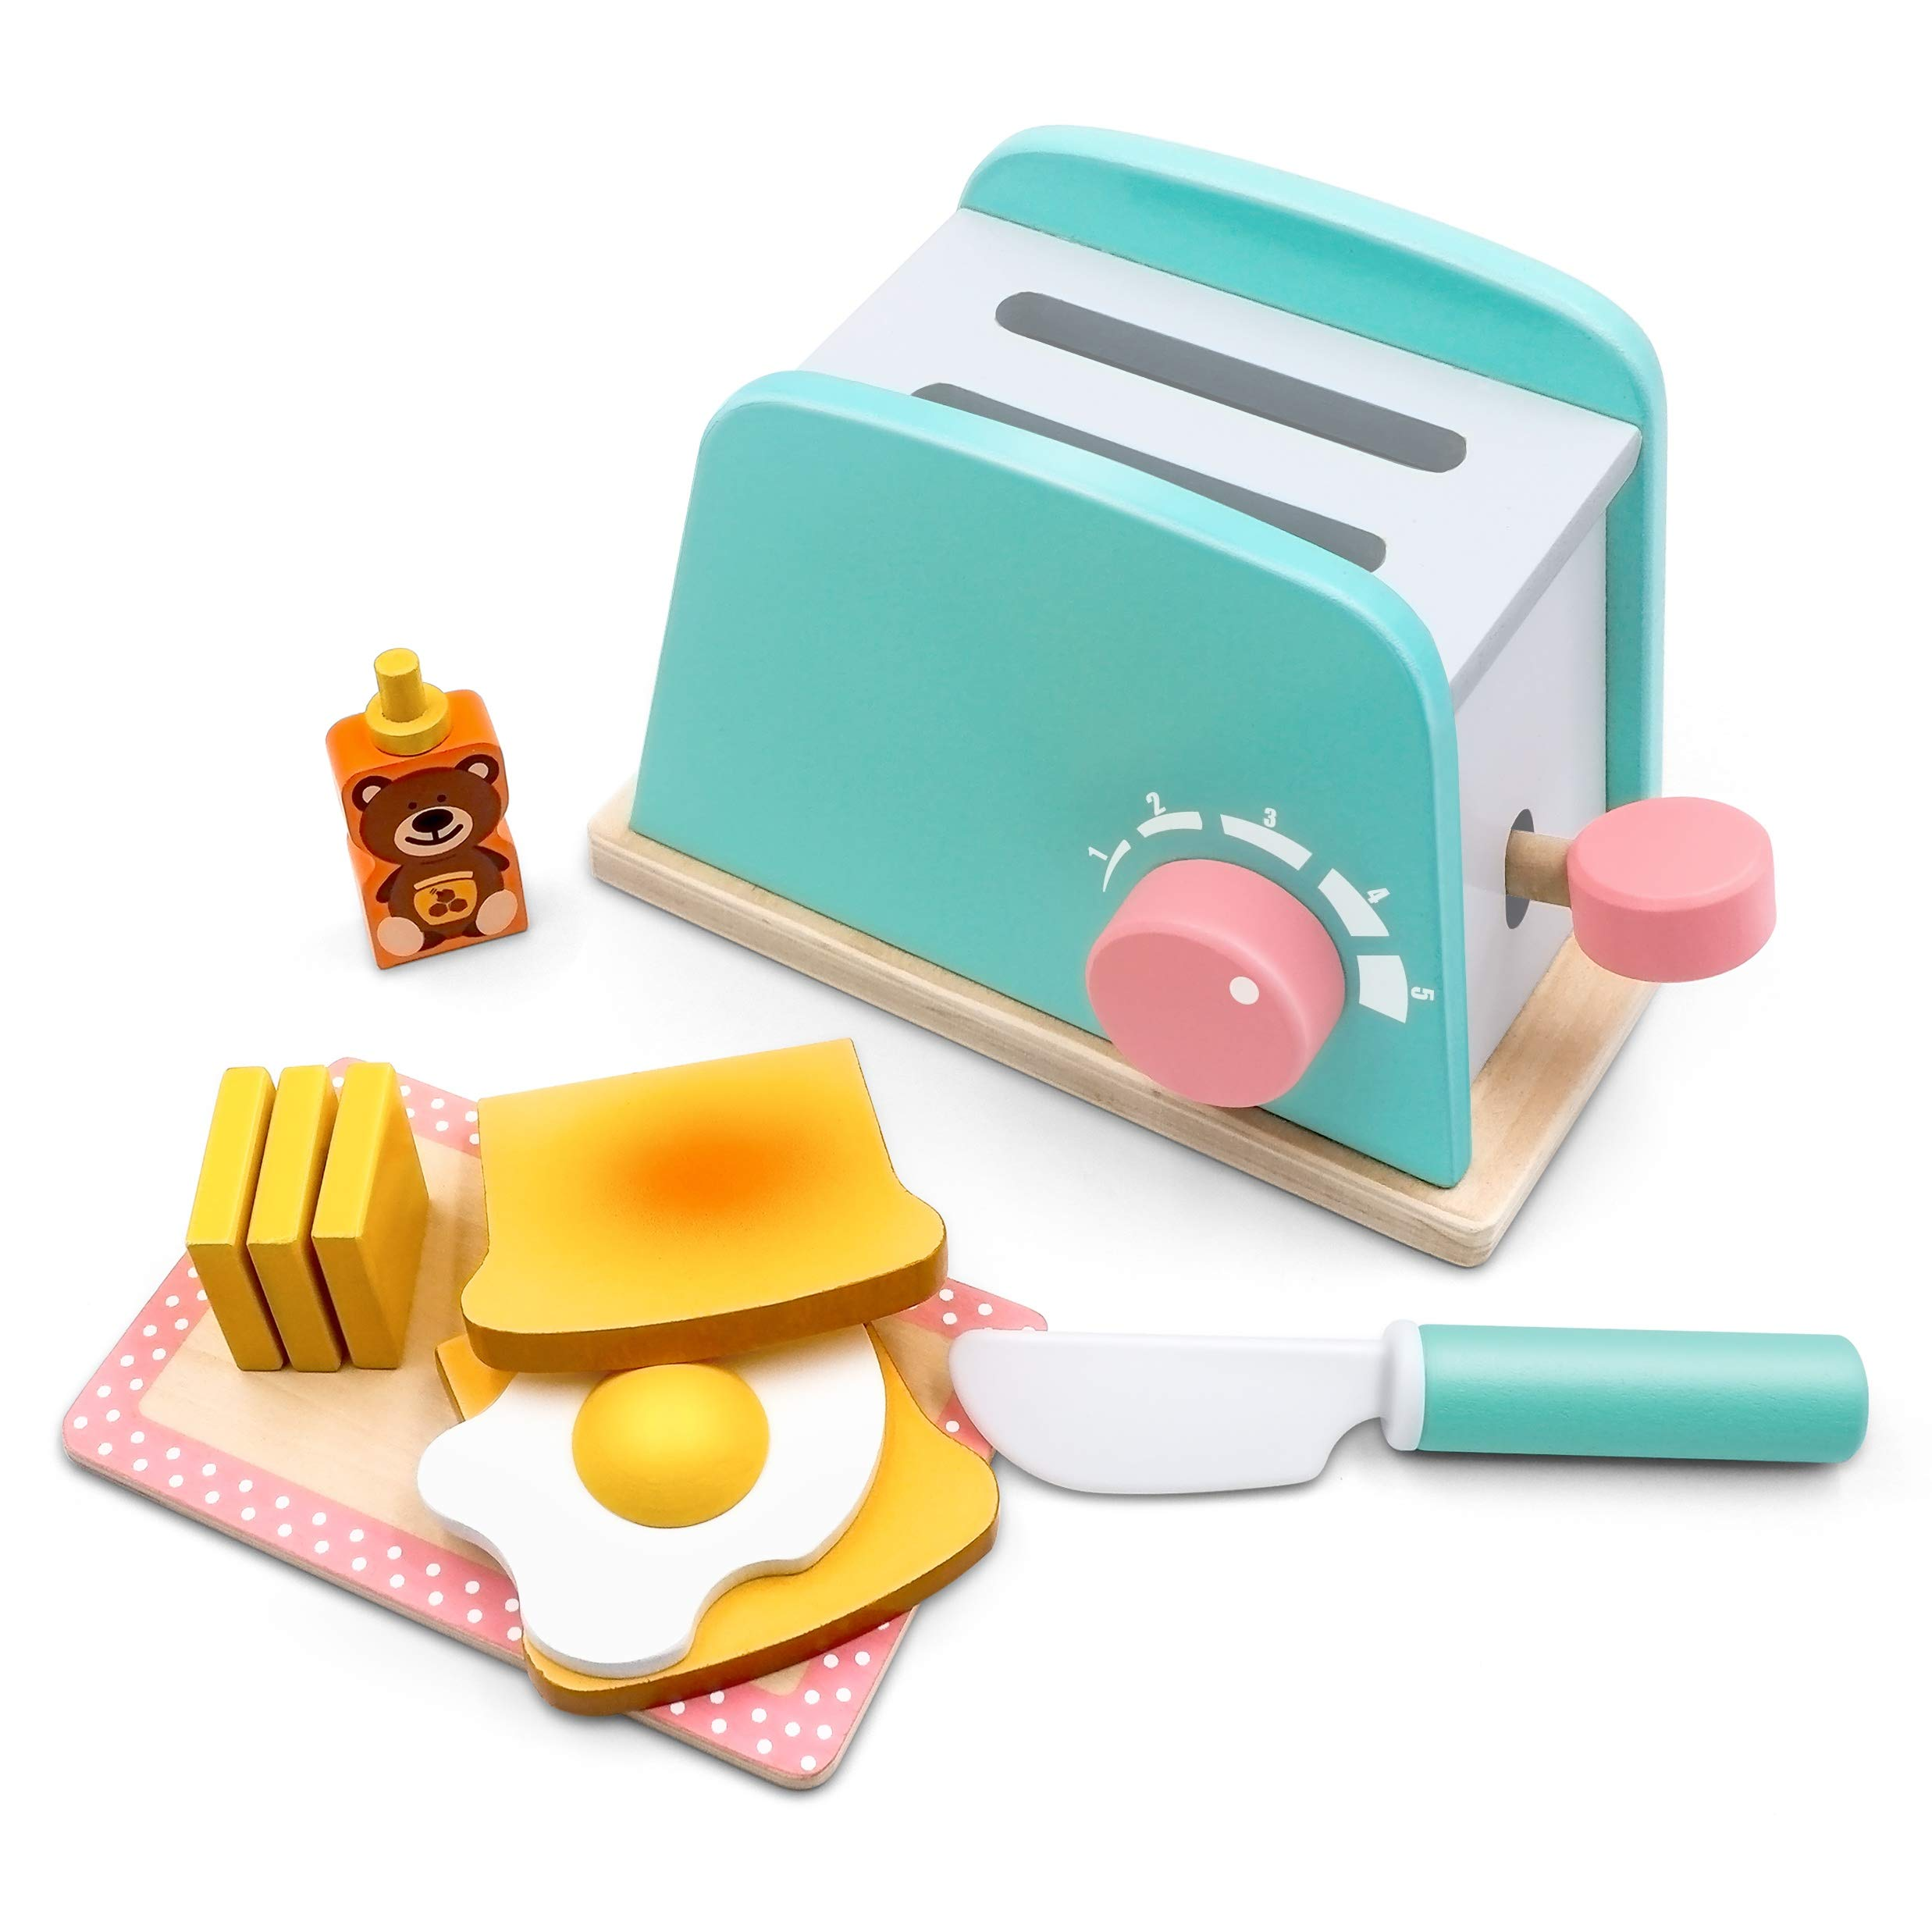 Toy Kitchen Wooden Pop-Up Toaster Play Set 10 Pcs, Interactive Early Learning Toaster, Exclusive Chopping Board, Knife, Poached Egg Honey Bear and Sliceable Butter, Fun and Colorful for Girls and Boys by Tiny Land